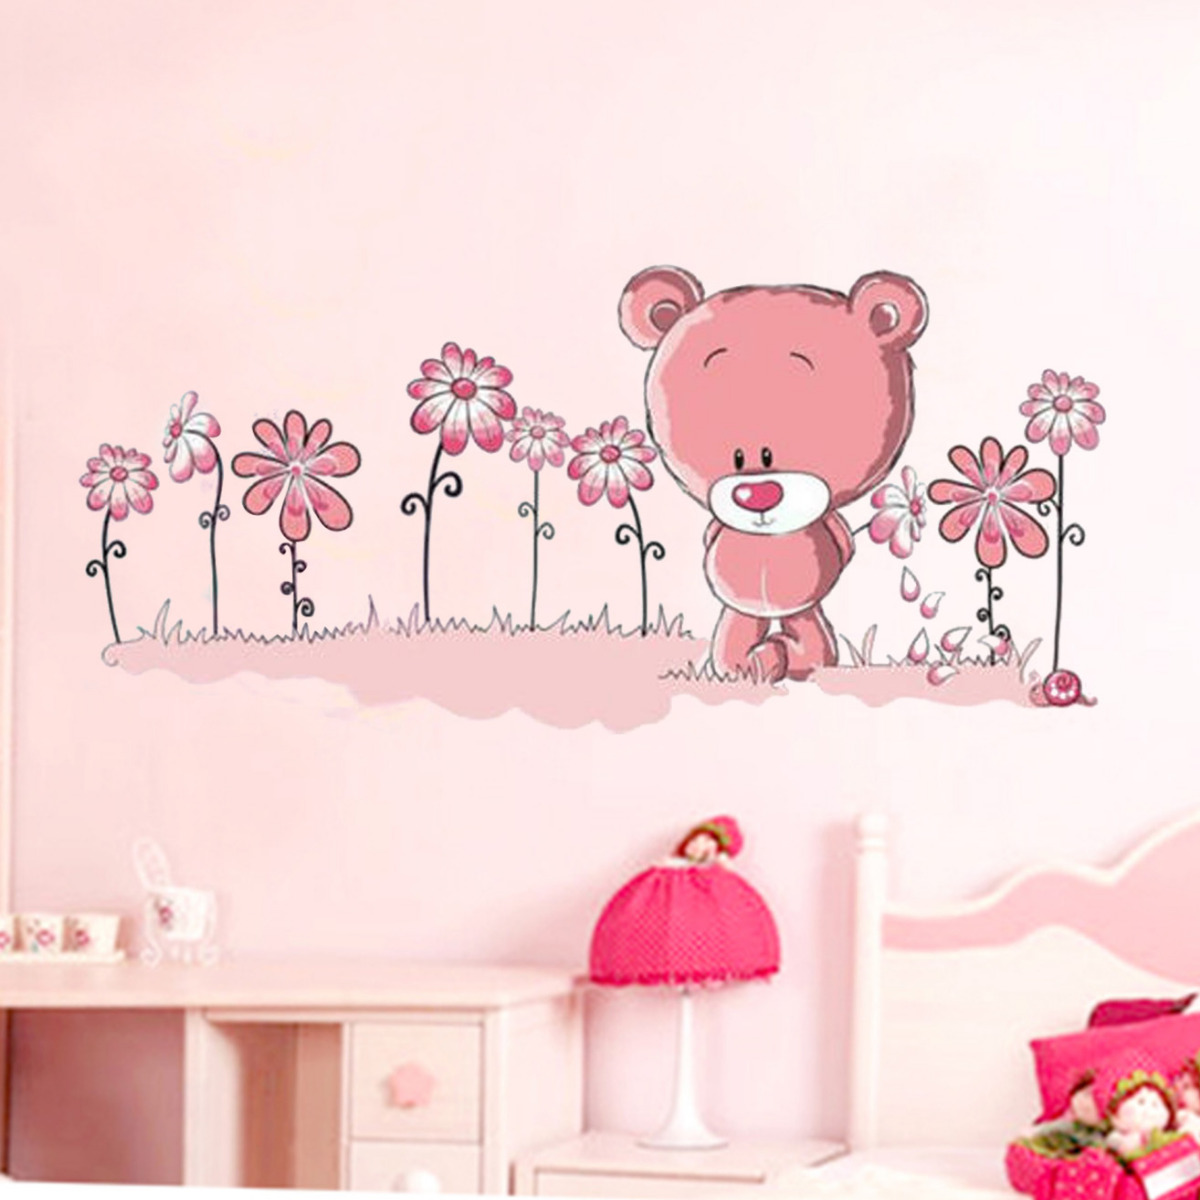 Fairy Girl Holding Flower Umbrella Removable Wall Sticker Decal Child Child Baby